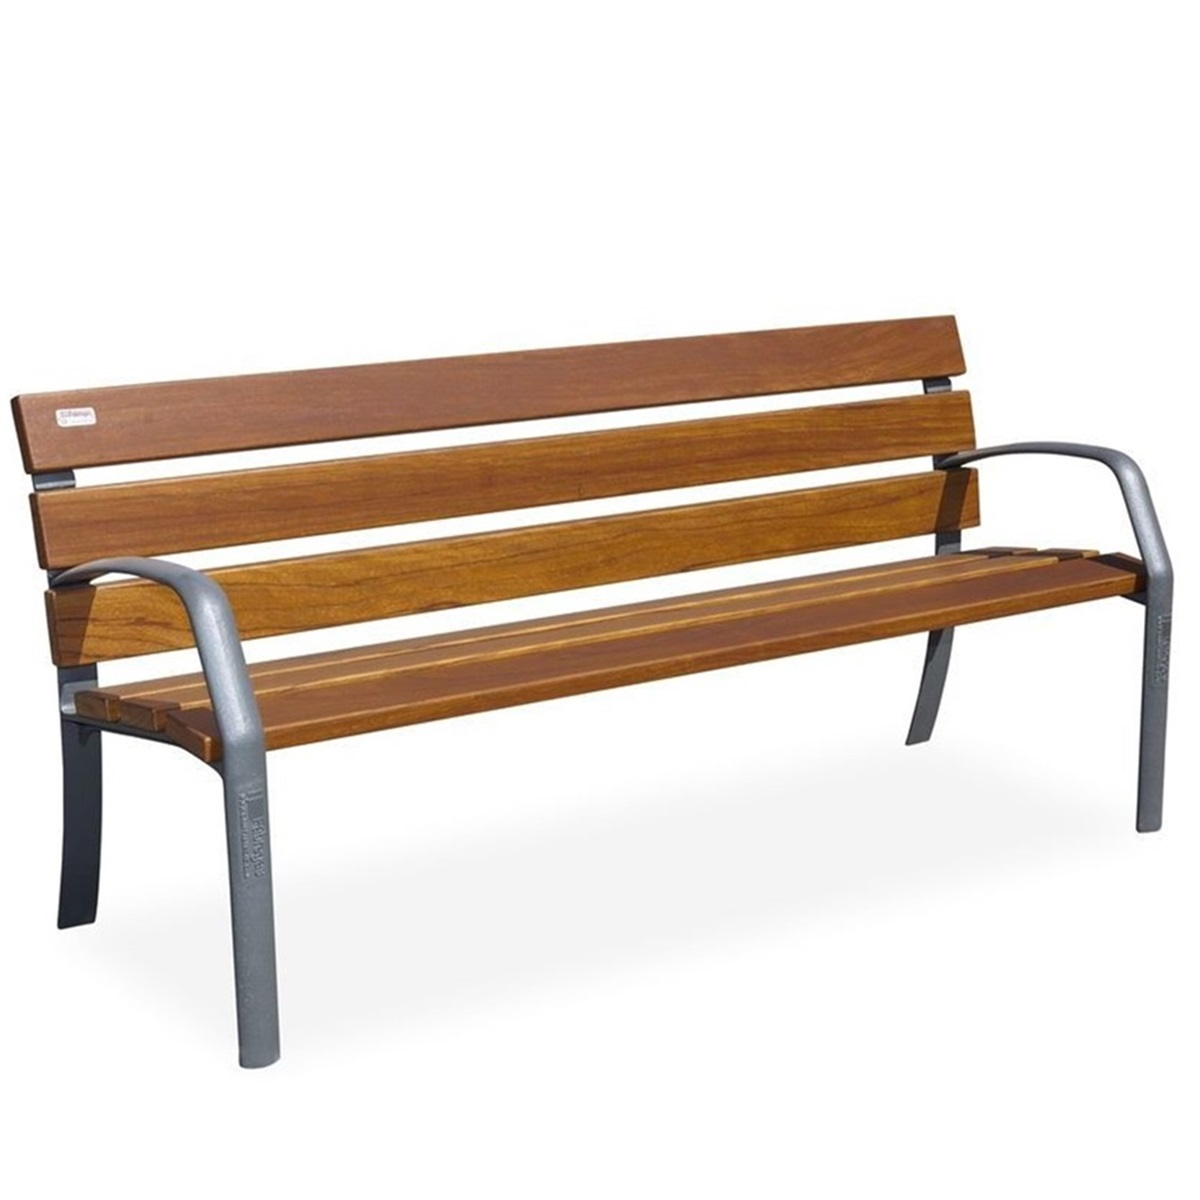 Similar Bench C-1016 zoomed